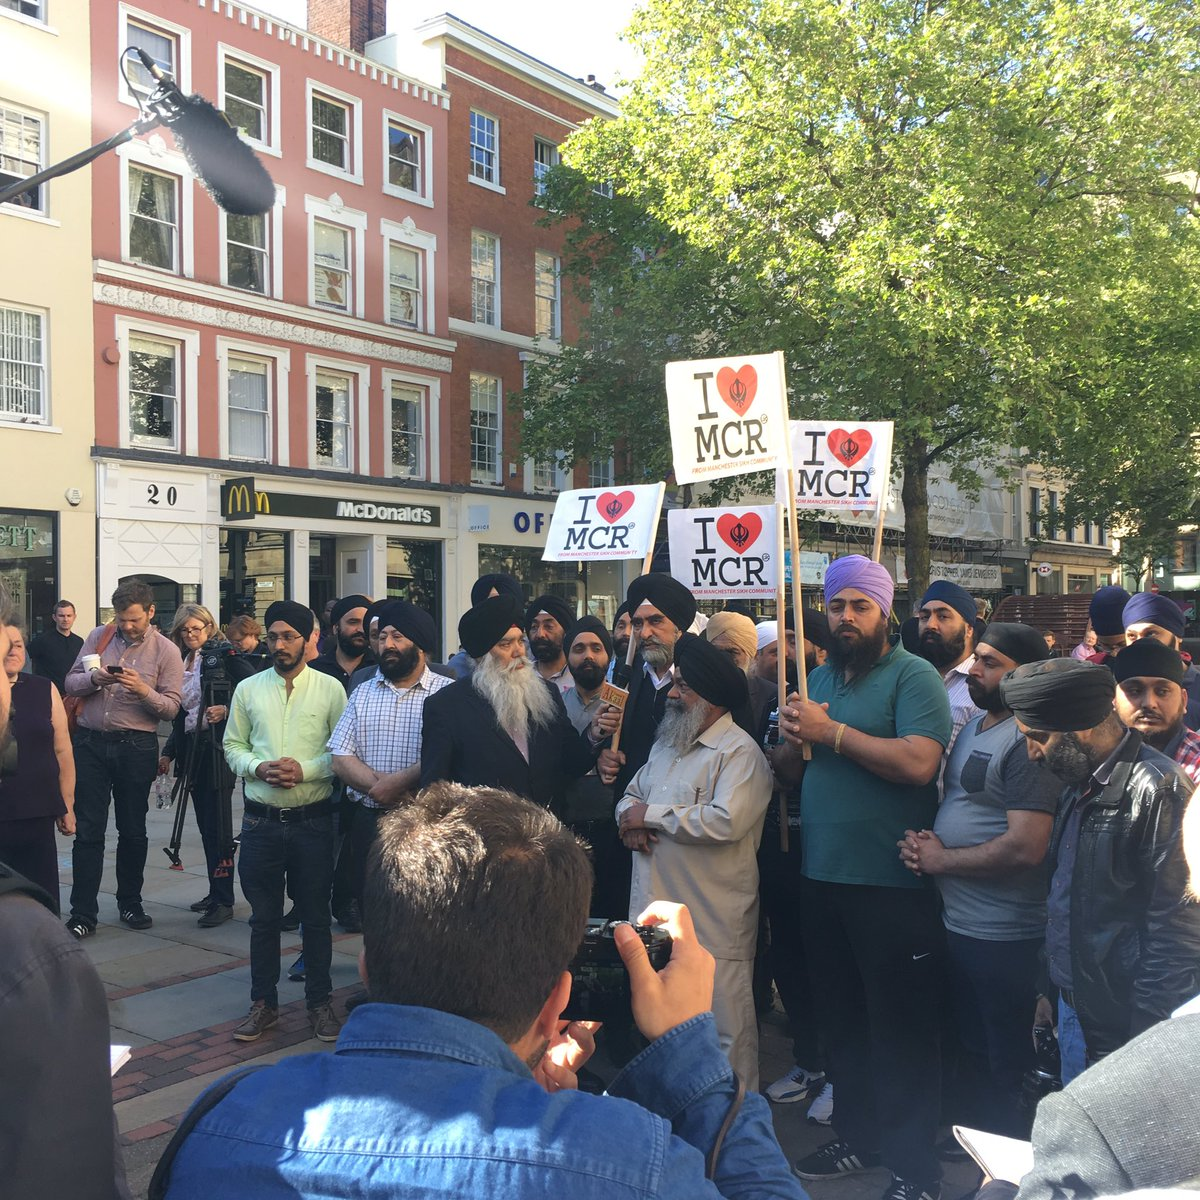 Manchester Sikh community showing their support in the city centre #ManchesterStrong https://t.co/rbRBjlKnZw